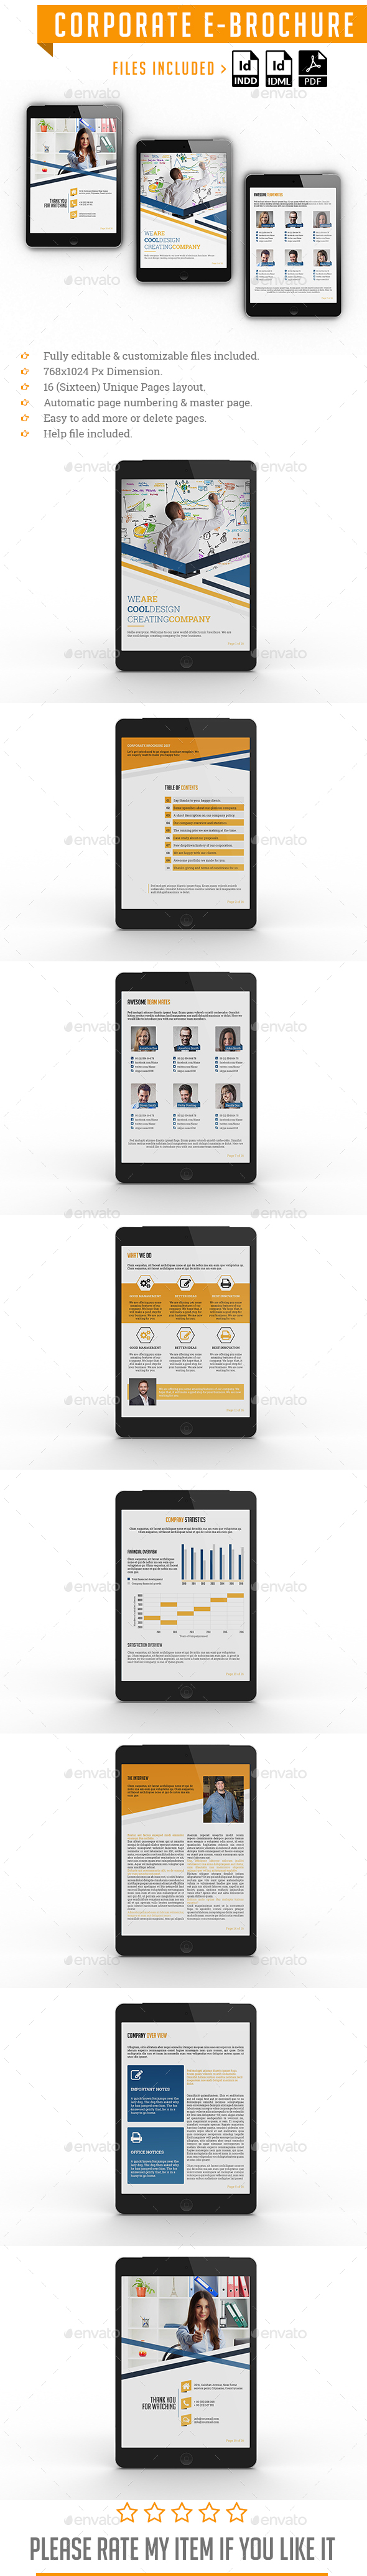 GraphicRiver Corporate E-Brochure 21115524